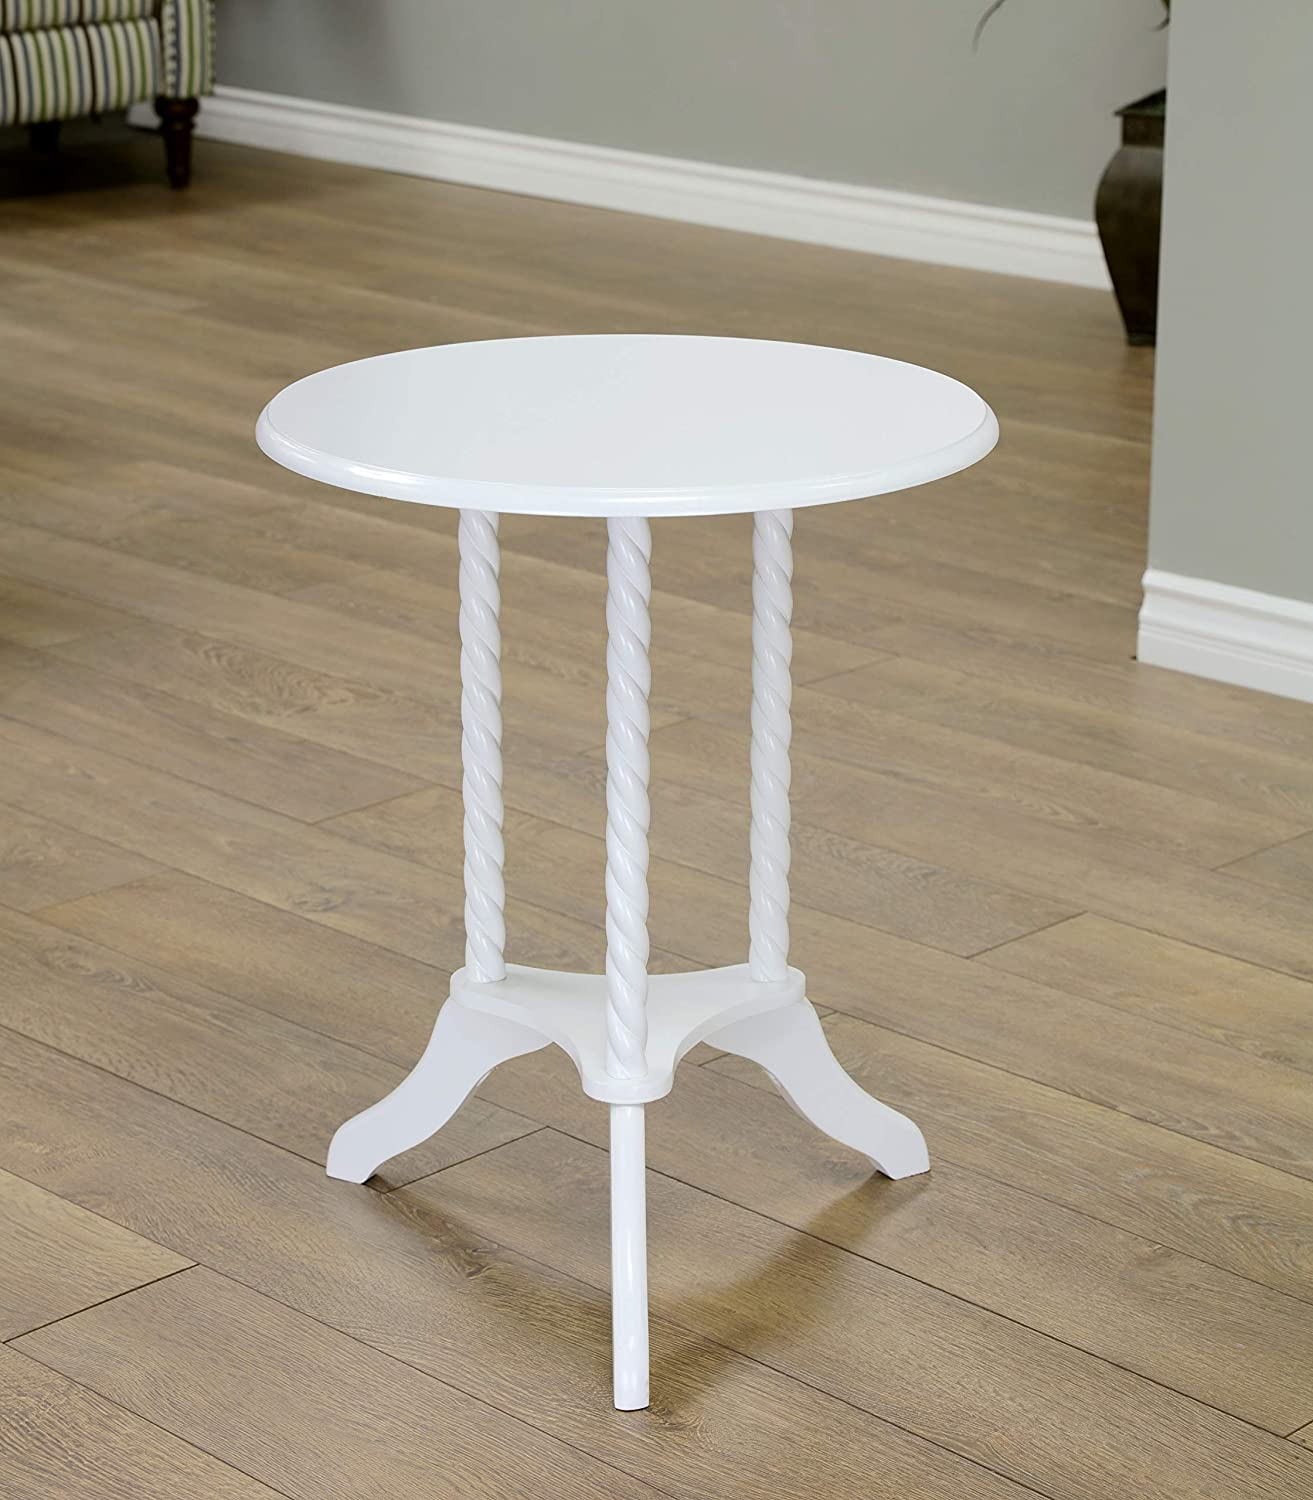 Frenchi Home Furnishing Round Pedestal End Table